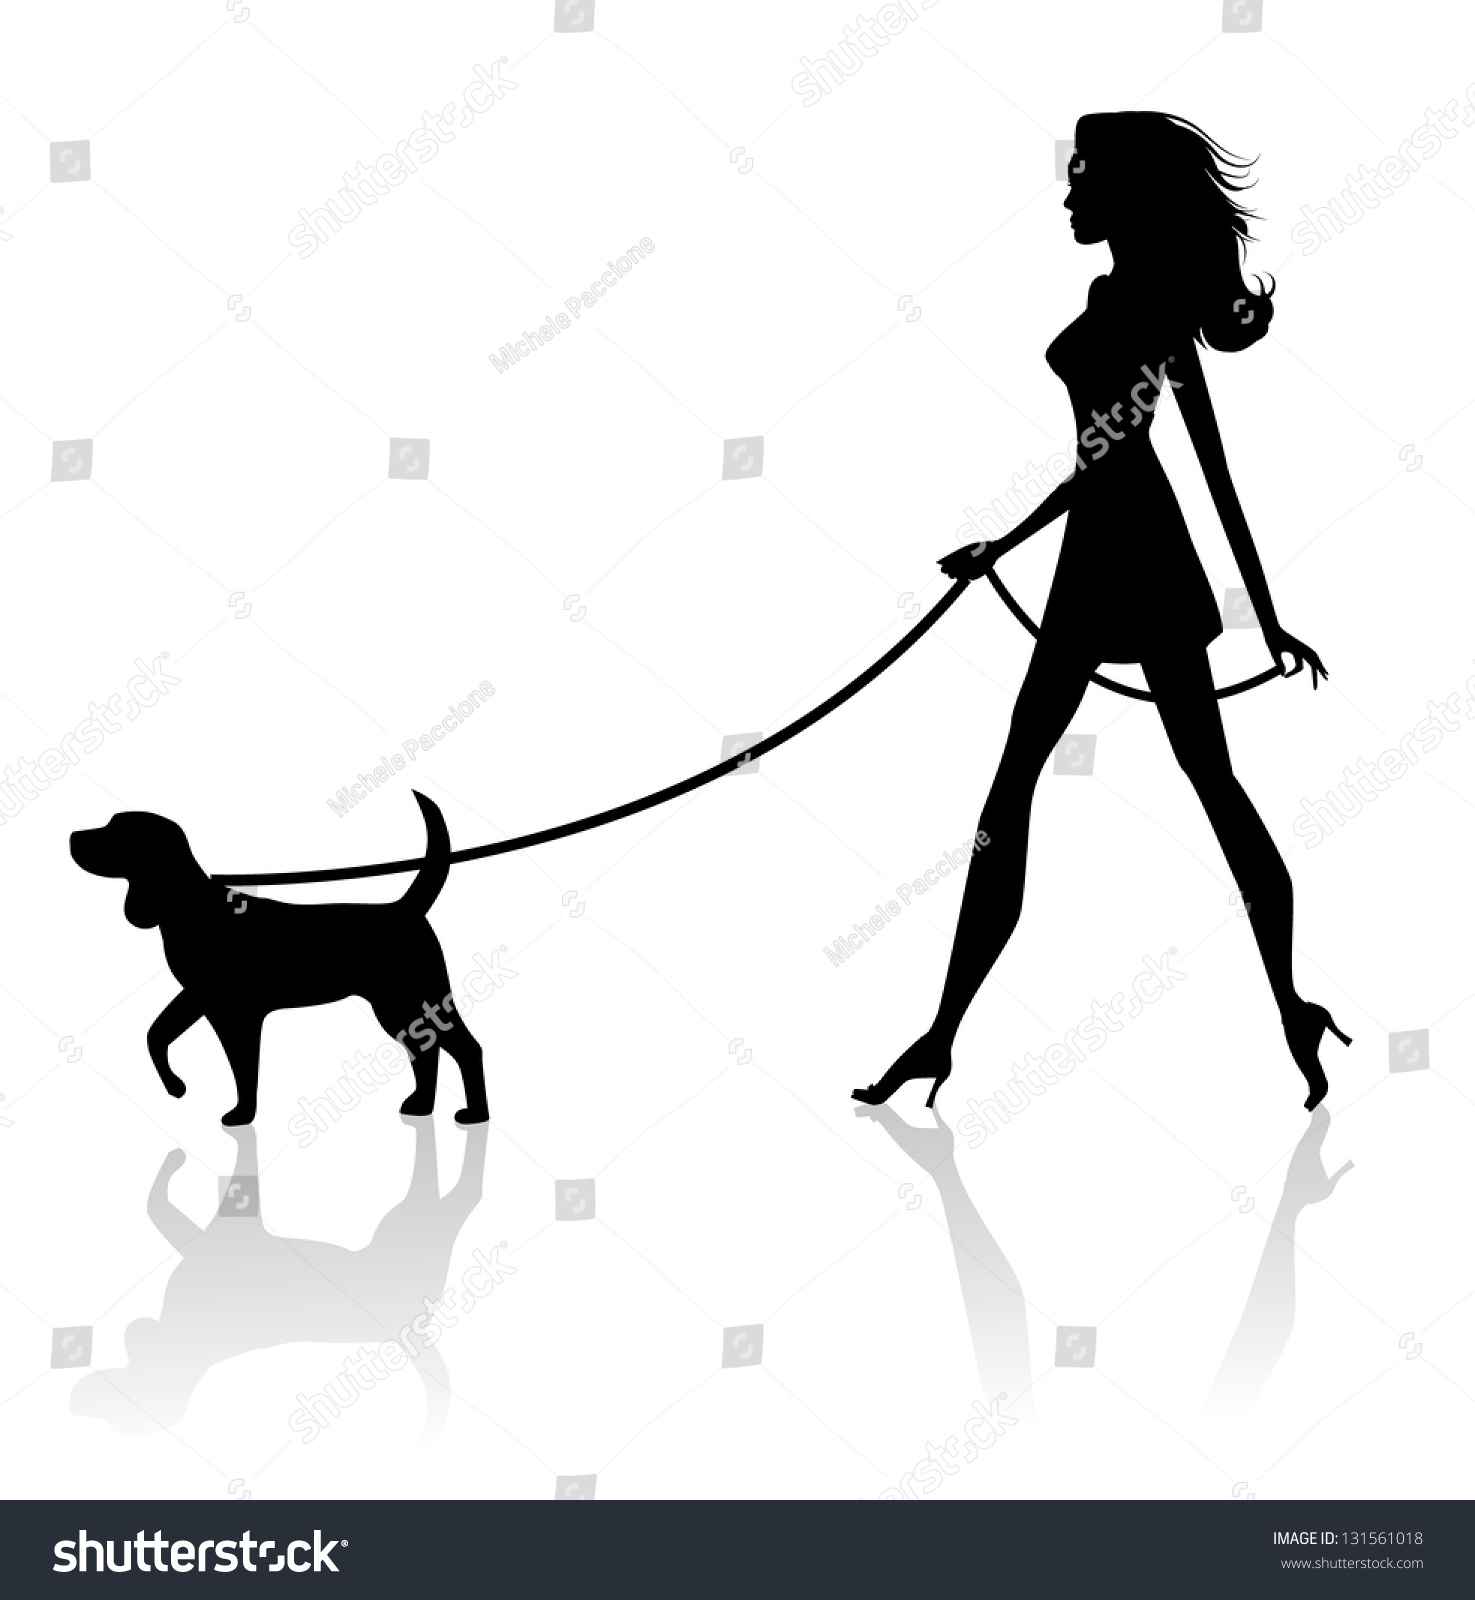 clipart girl walking dog-#25